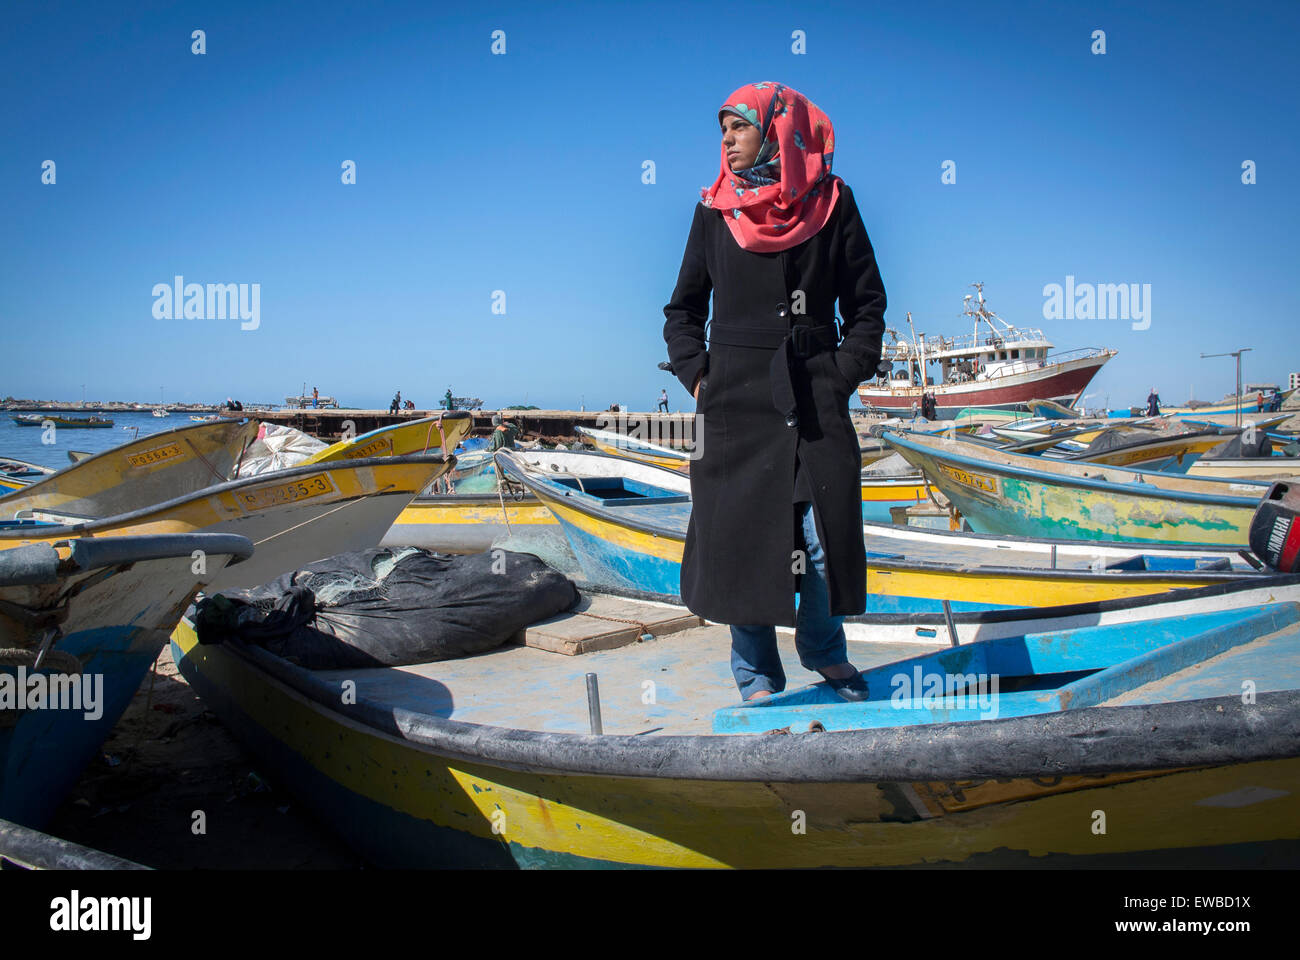 The Gaza Strips only Fisherwoman 21 year old Madeline Kollab stands on her damaged fishing boat in Gaza Port. - Stock Image